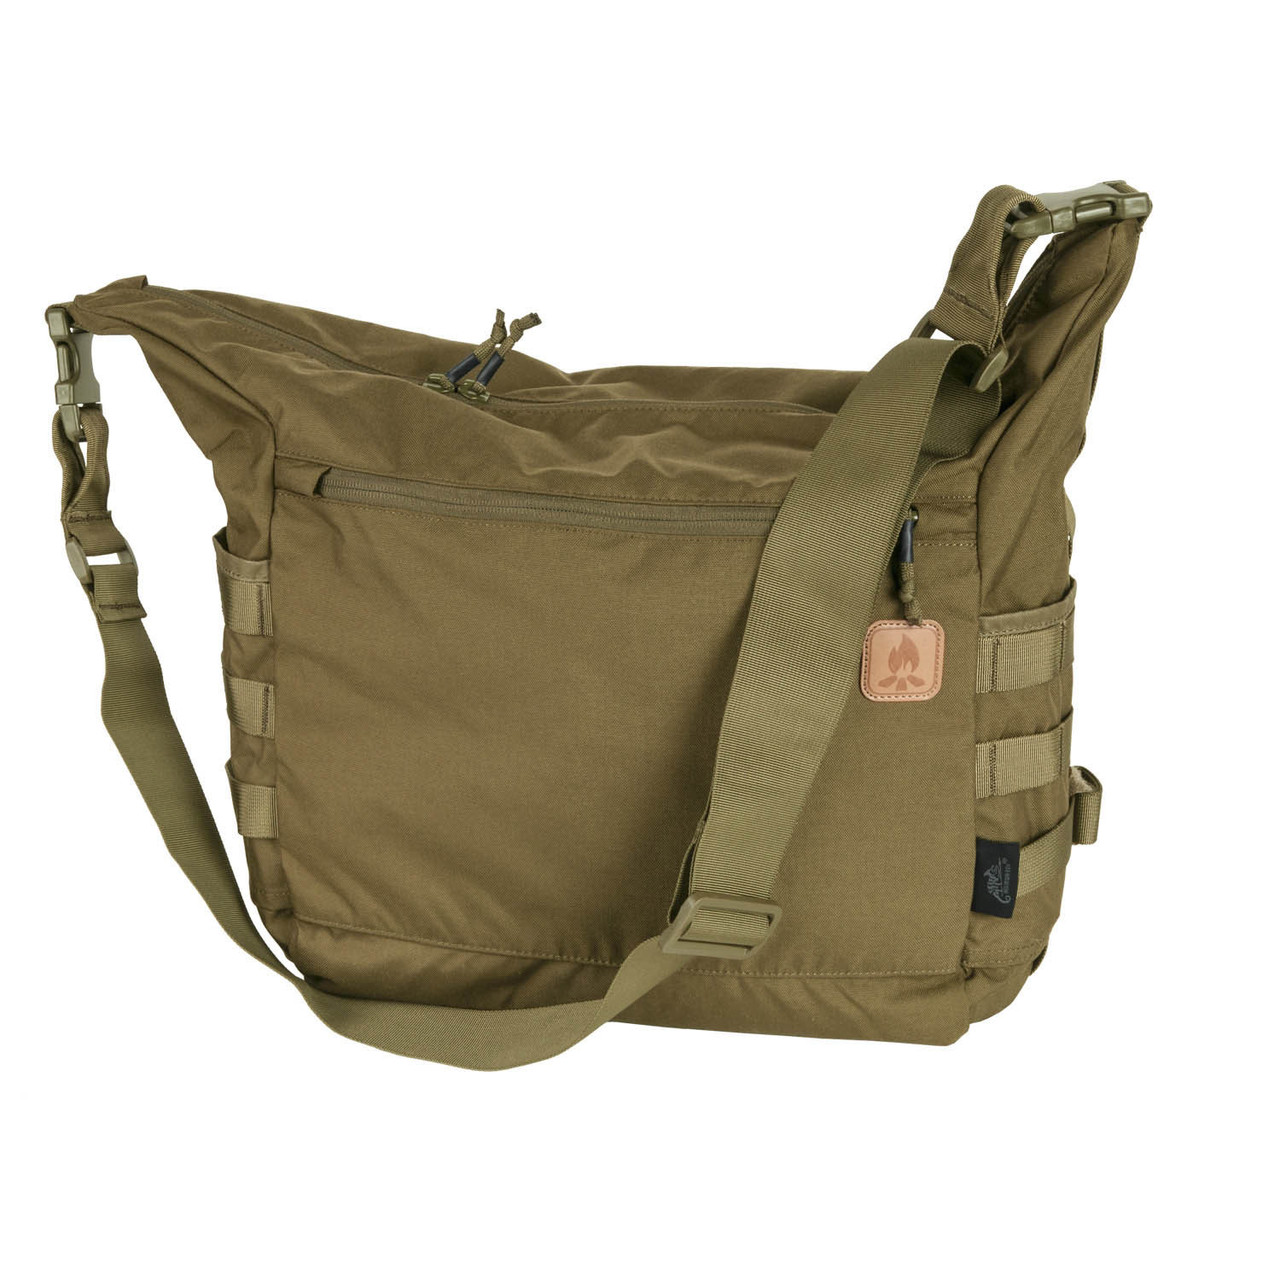 Сумка Helikon-Tex® BUSHCRAFT SATCHEL® Bag - Cordura® - Койот